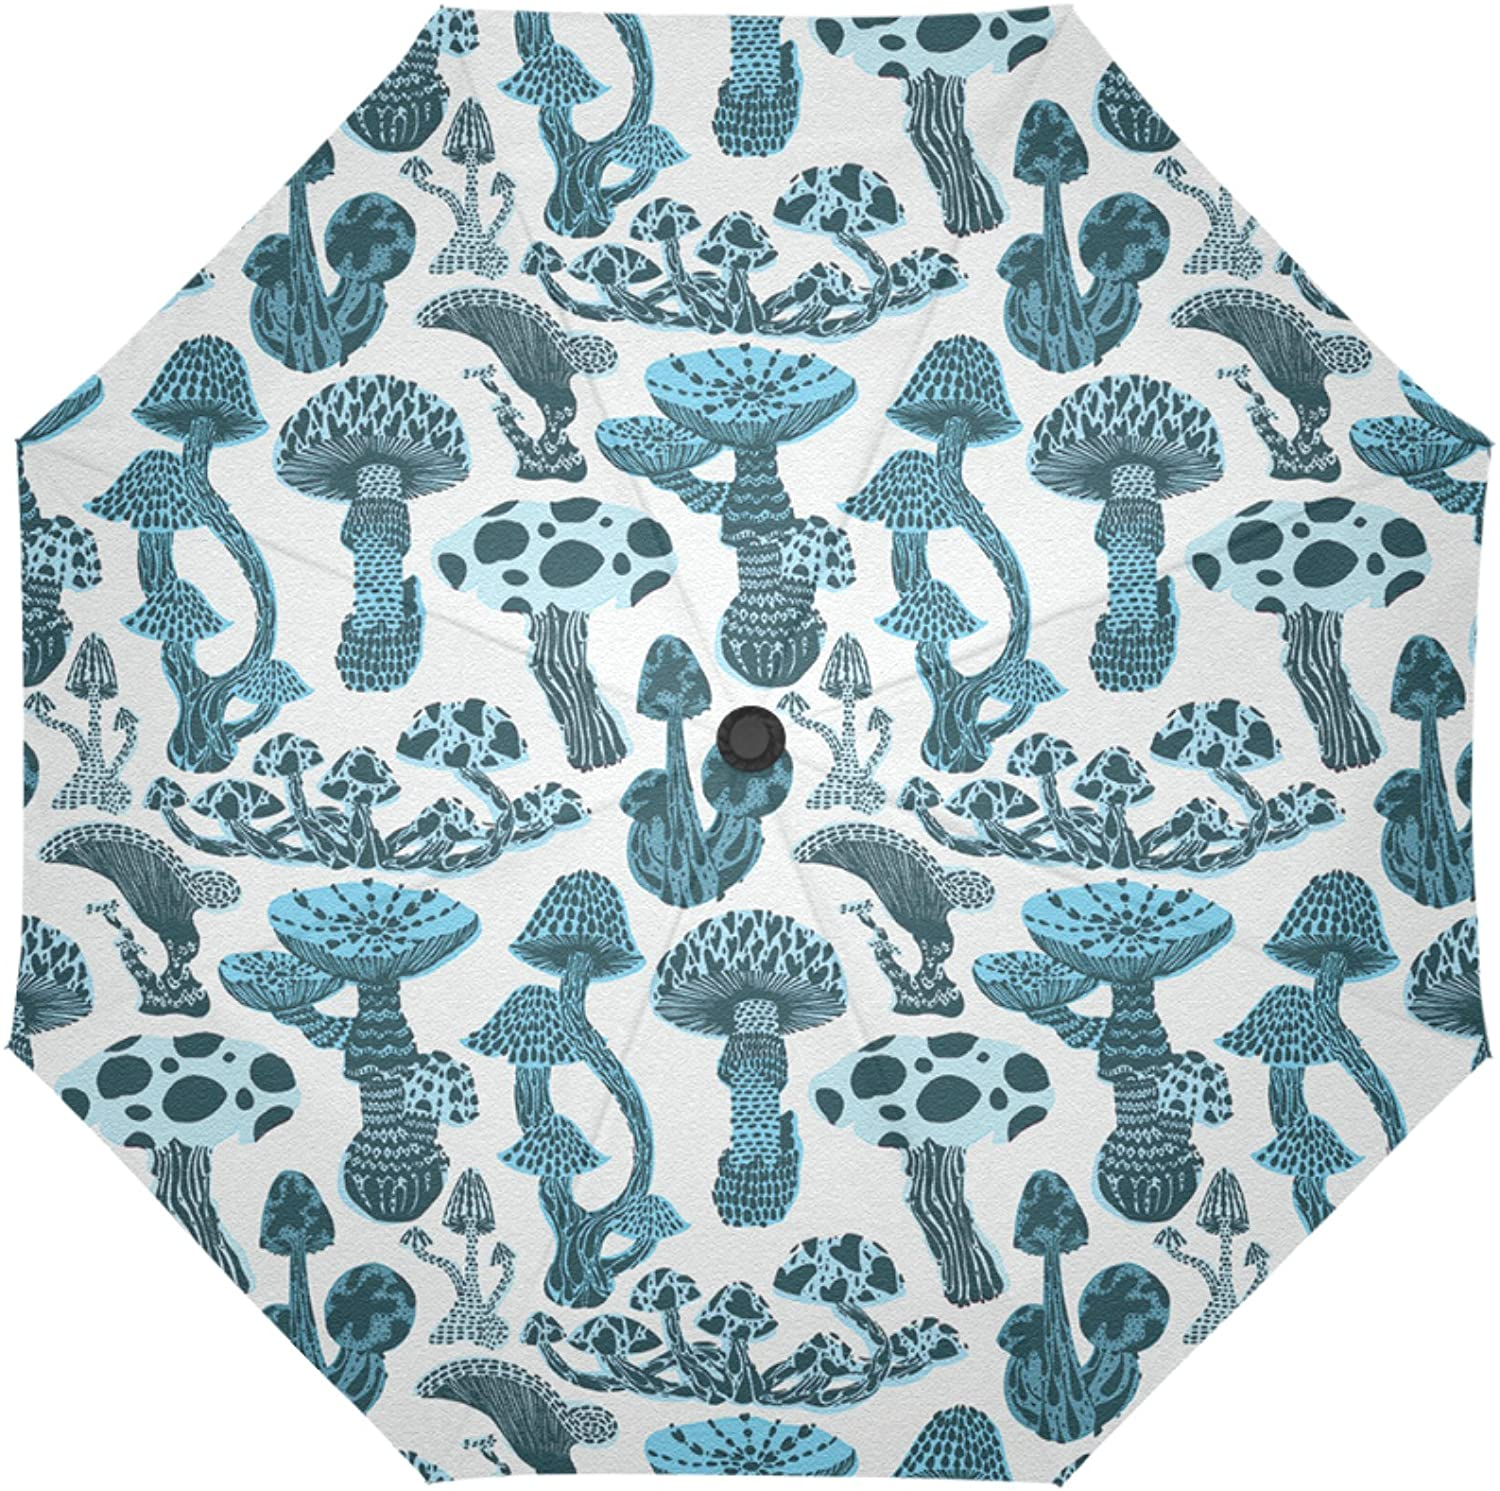 Artsbaba Compact Umbrella Mushroom Flodable Travel Umbrella Auto Open Close Rain Windproof